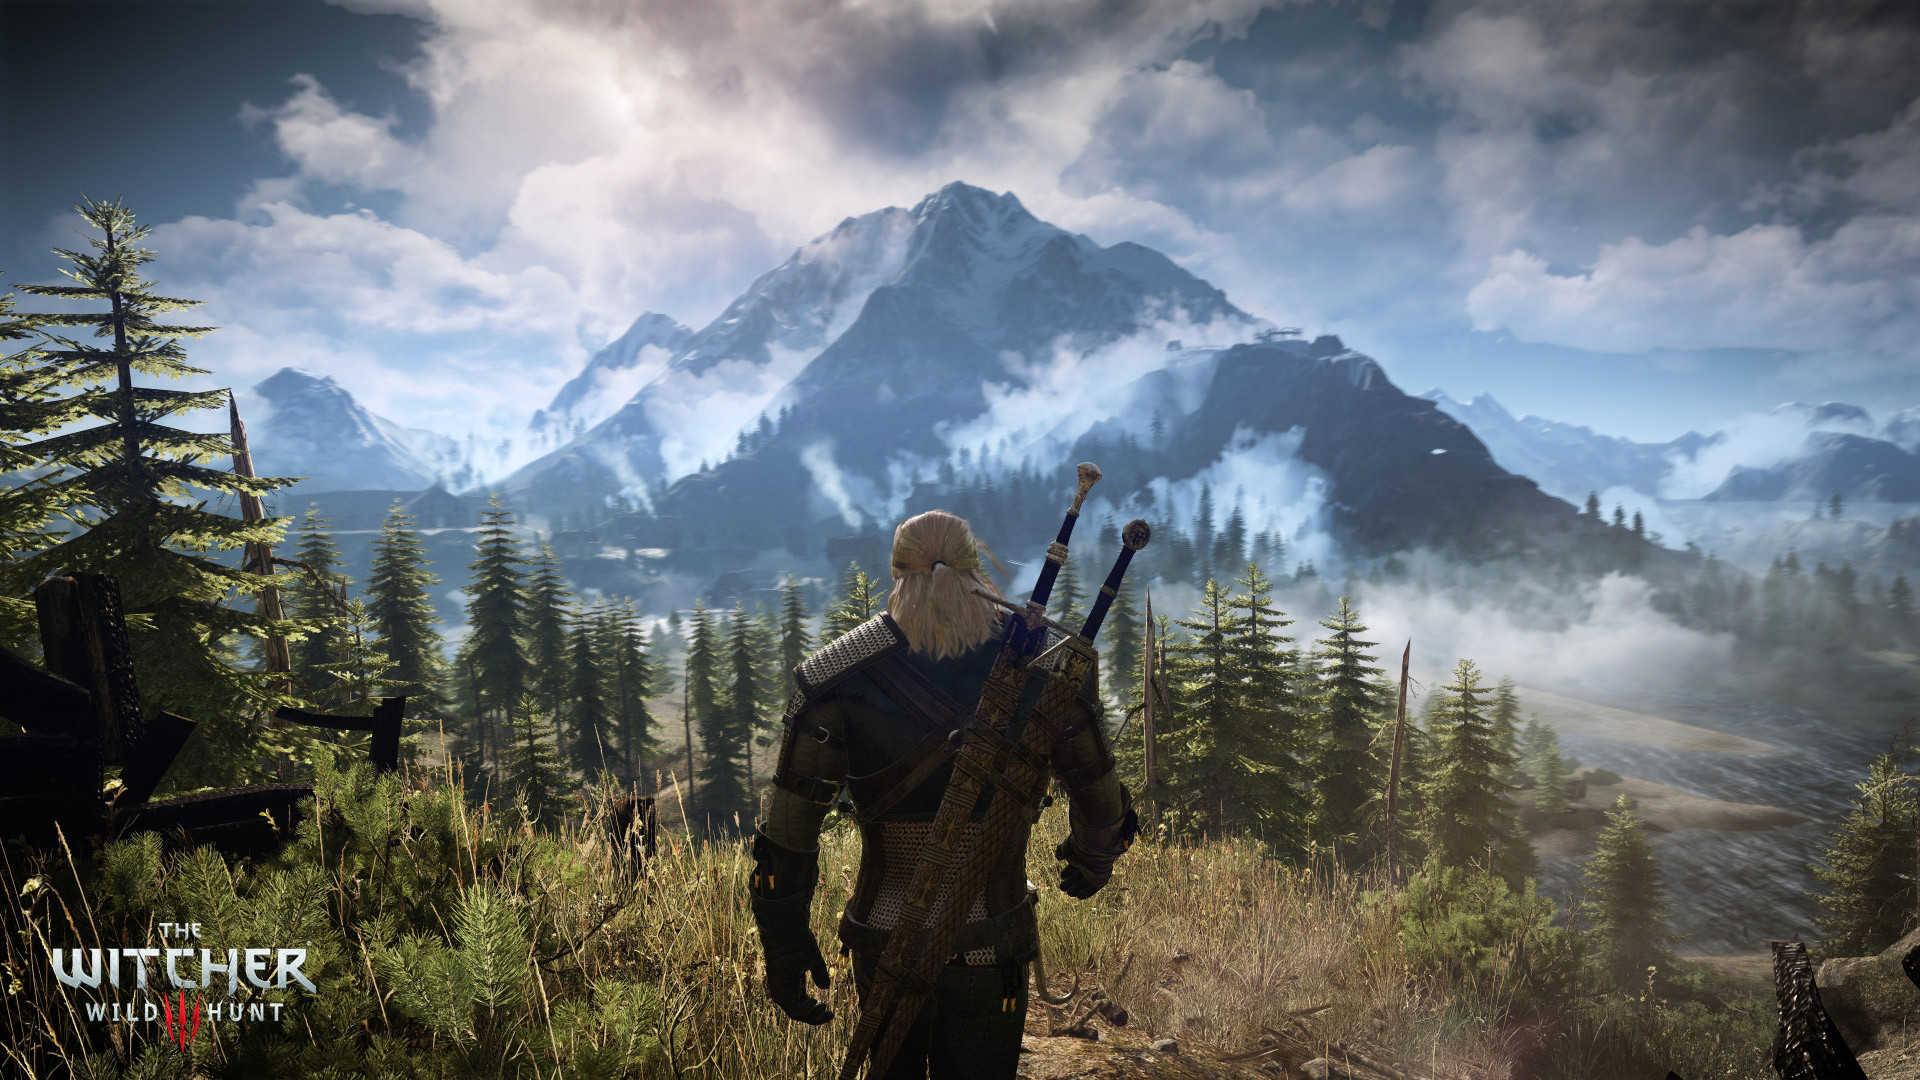 The Witcher 3 Wallpaper 47274